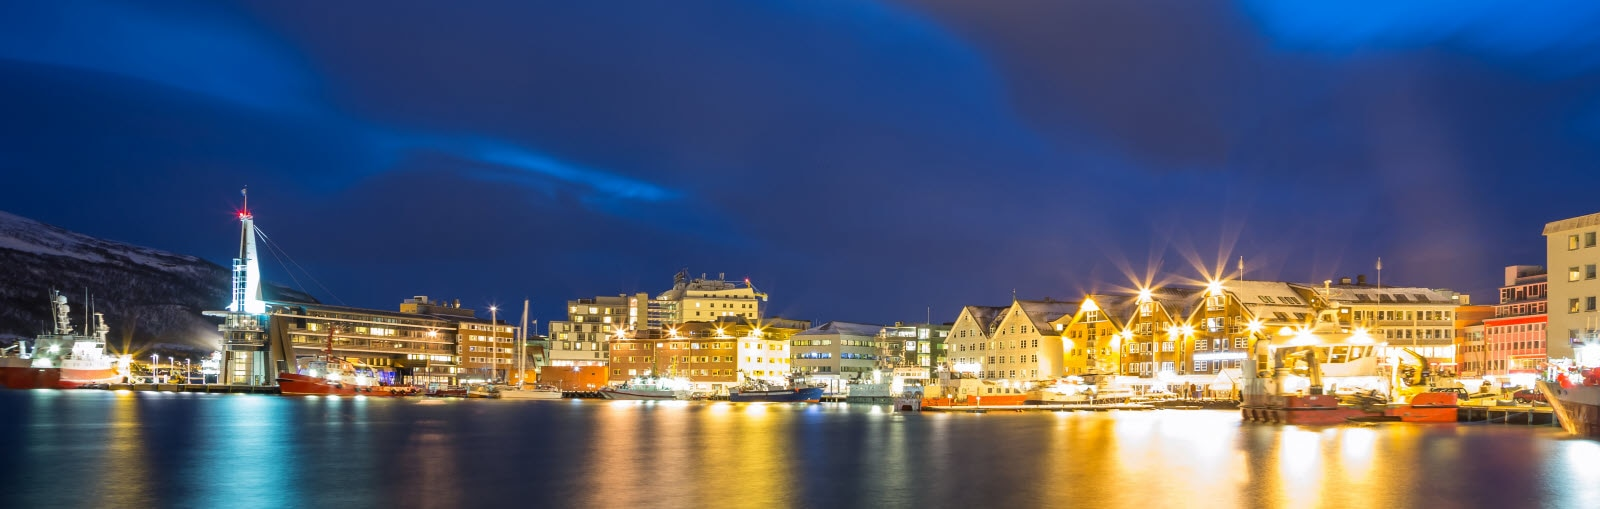 5923069-tromso-bay-and-cityscape_by_Vichaya_Kiatyi.jpg